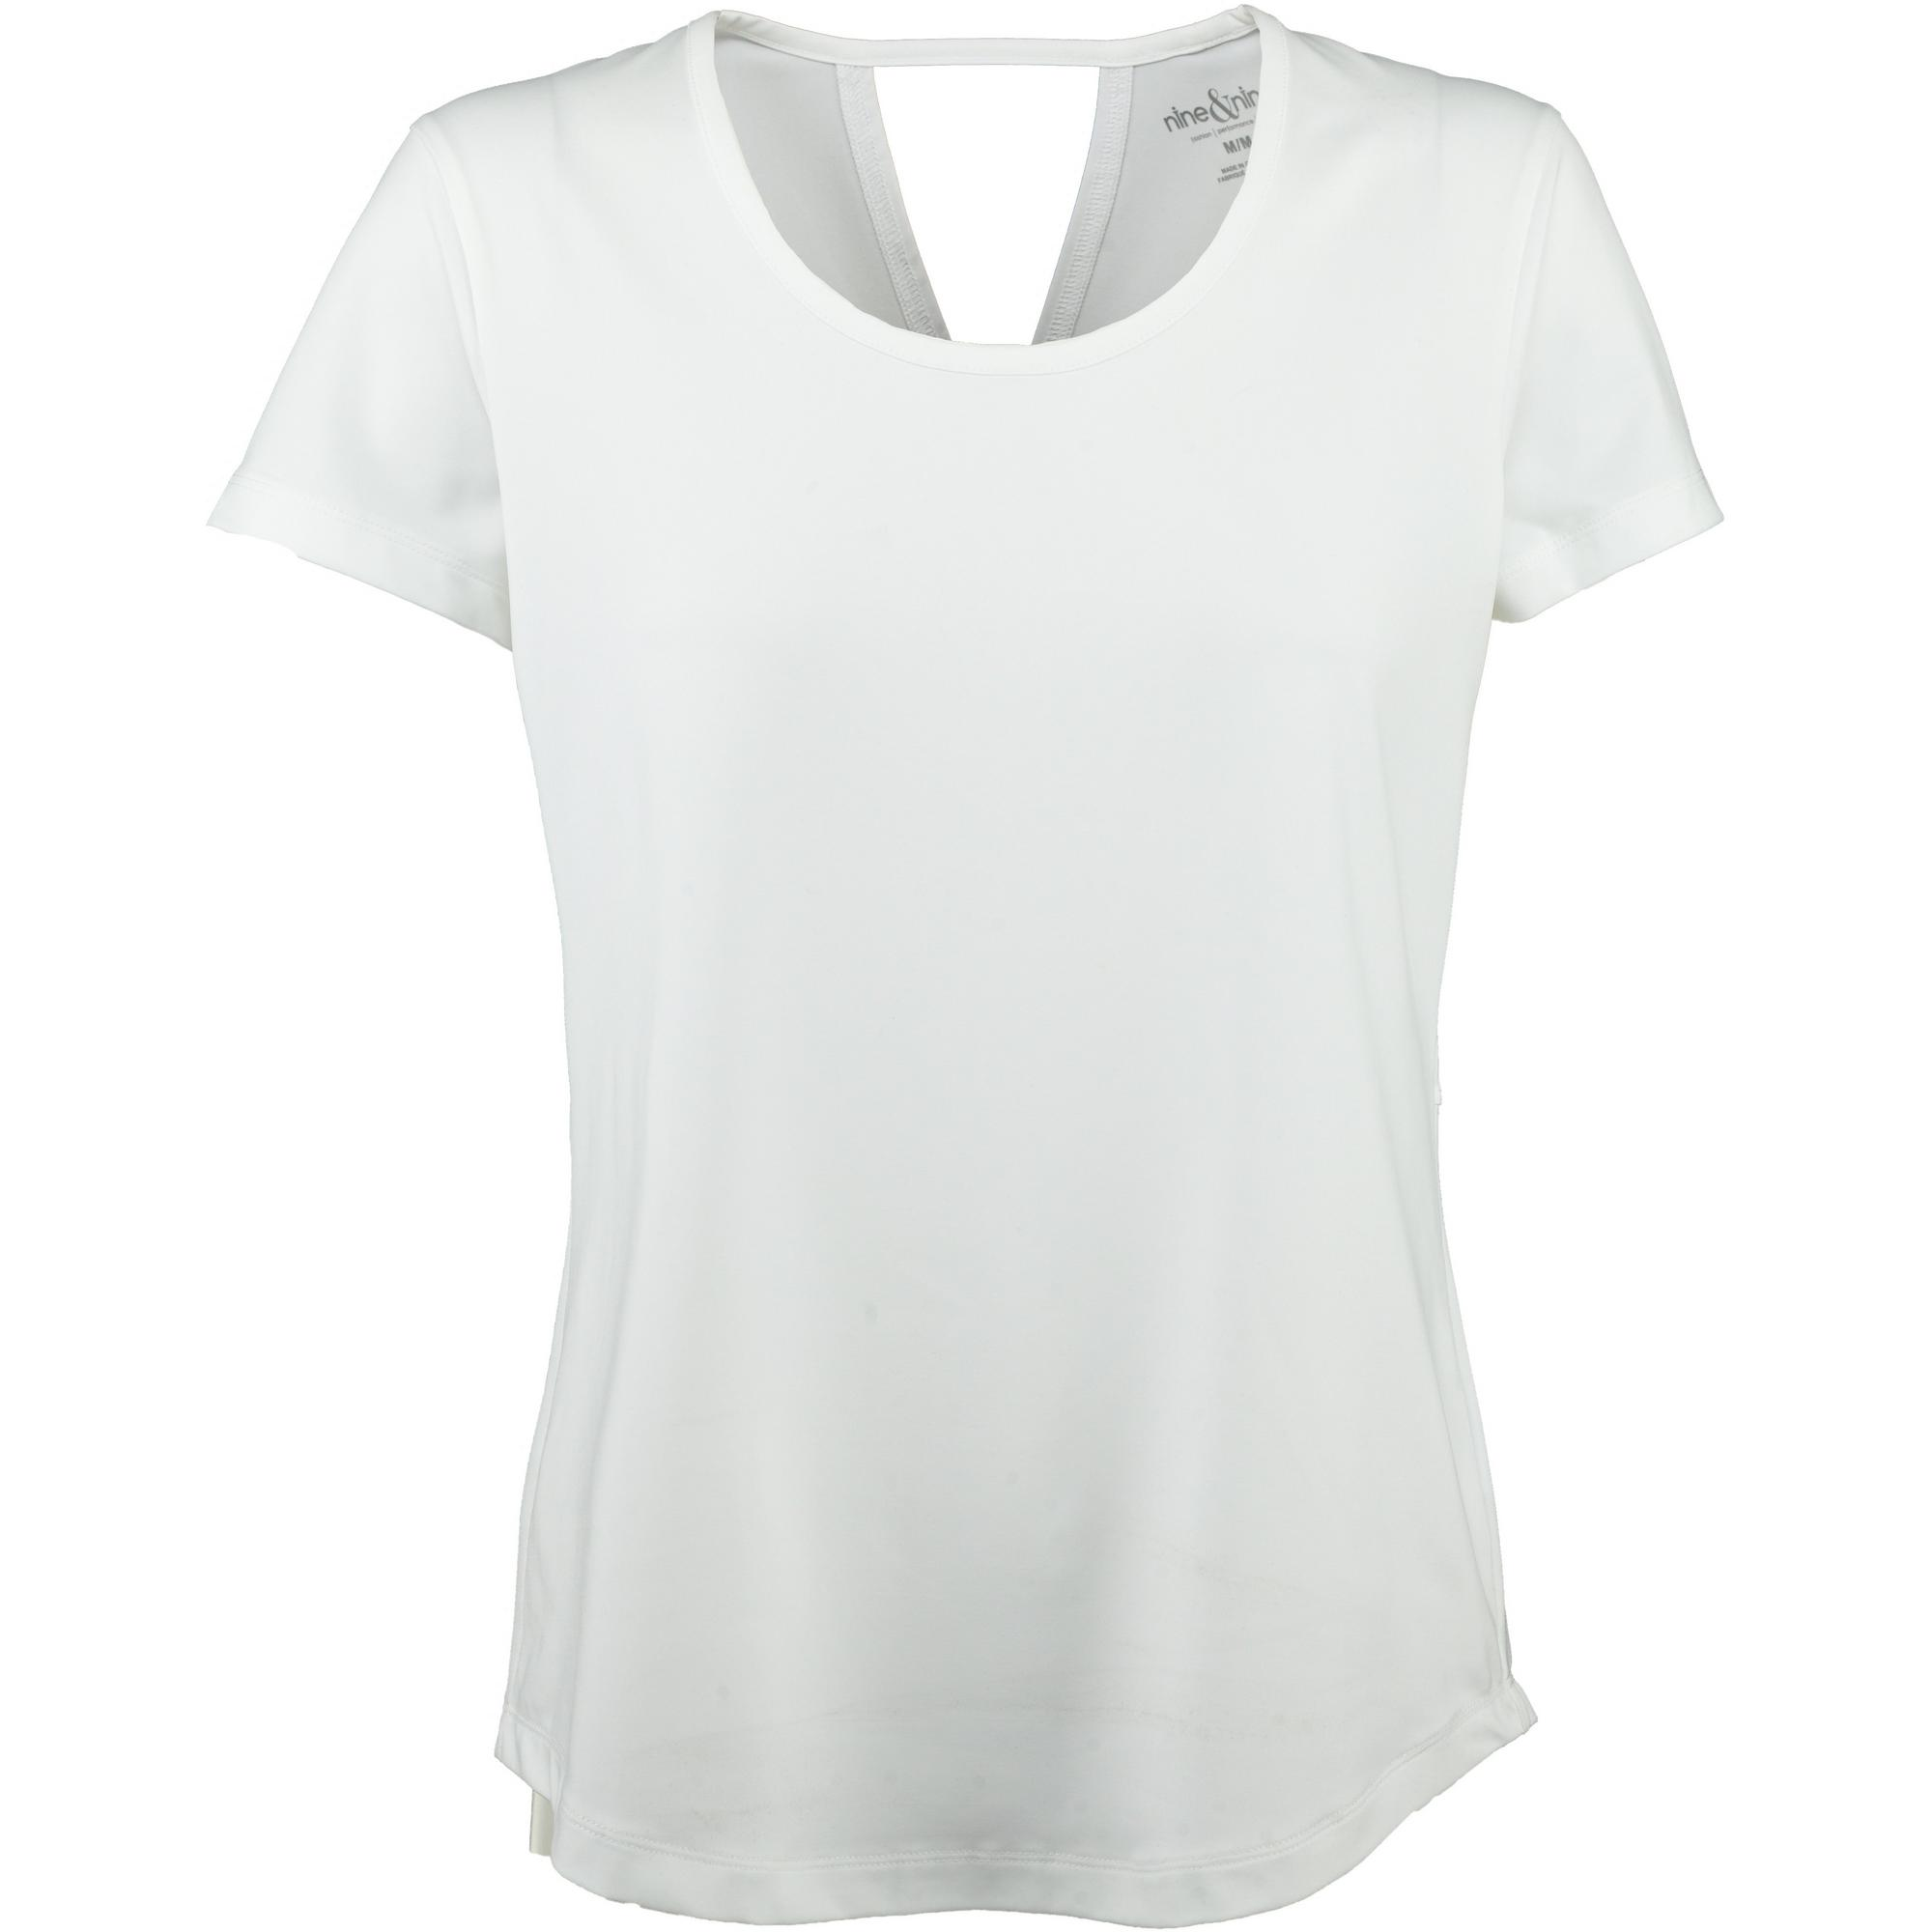 Women's Athletic Short Sleeve Top